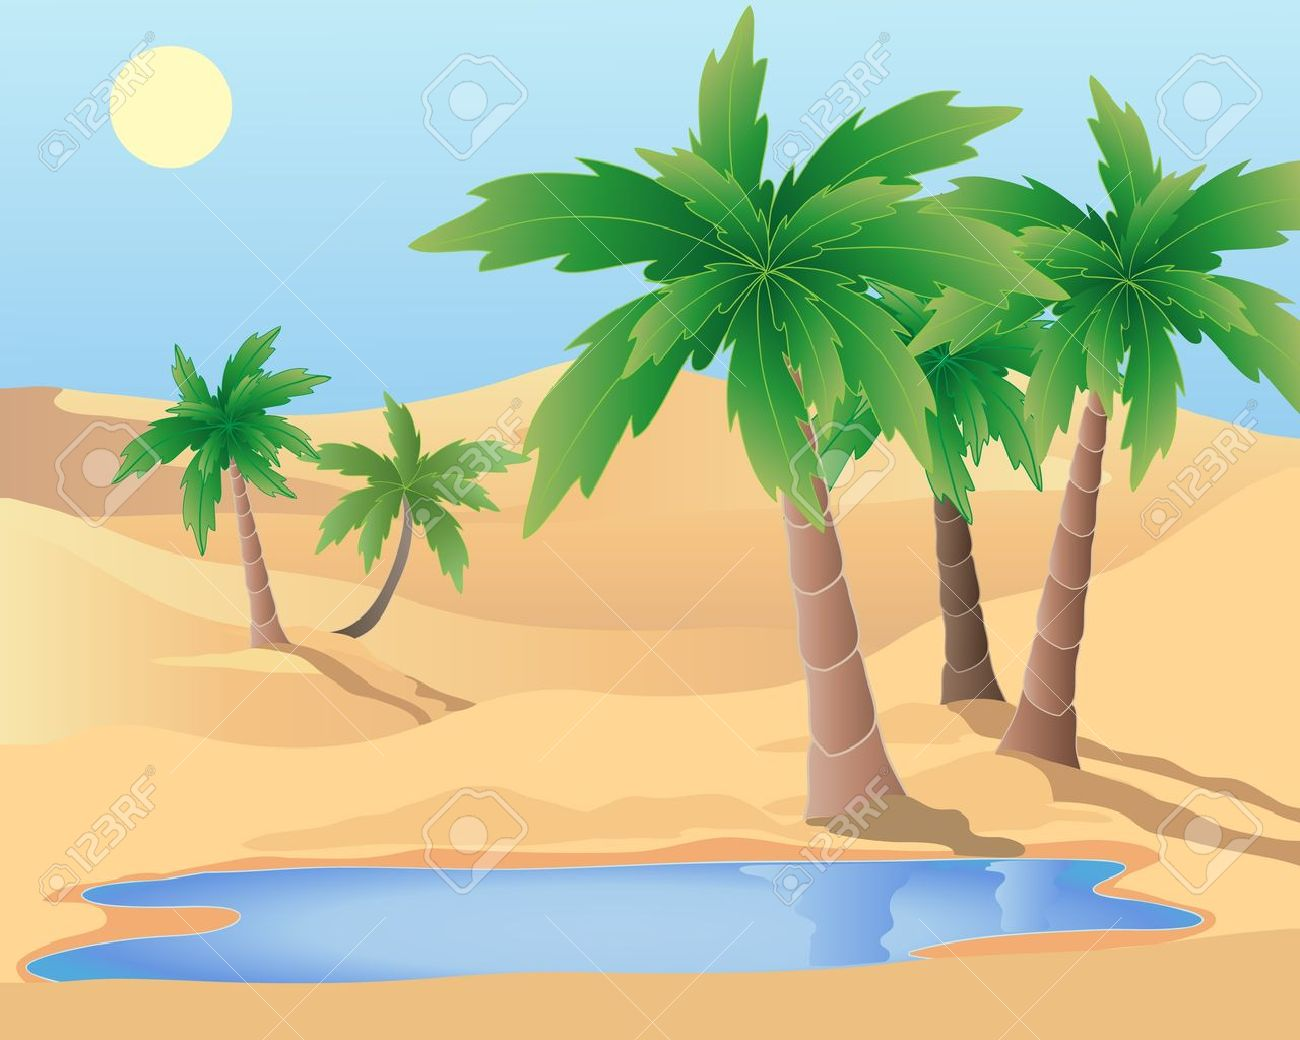 an illustration of a desert oasis with palm trees and a pool under a blue sky - 9574041